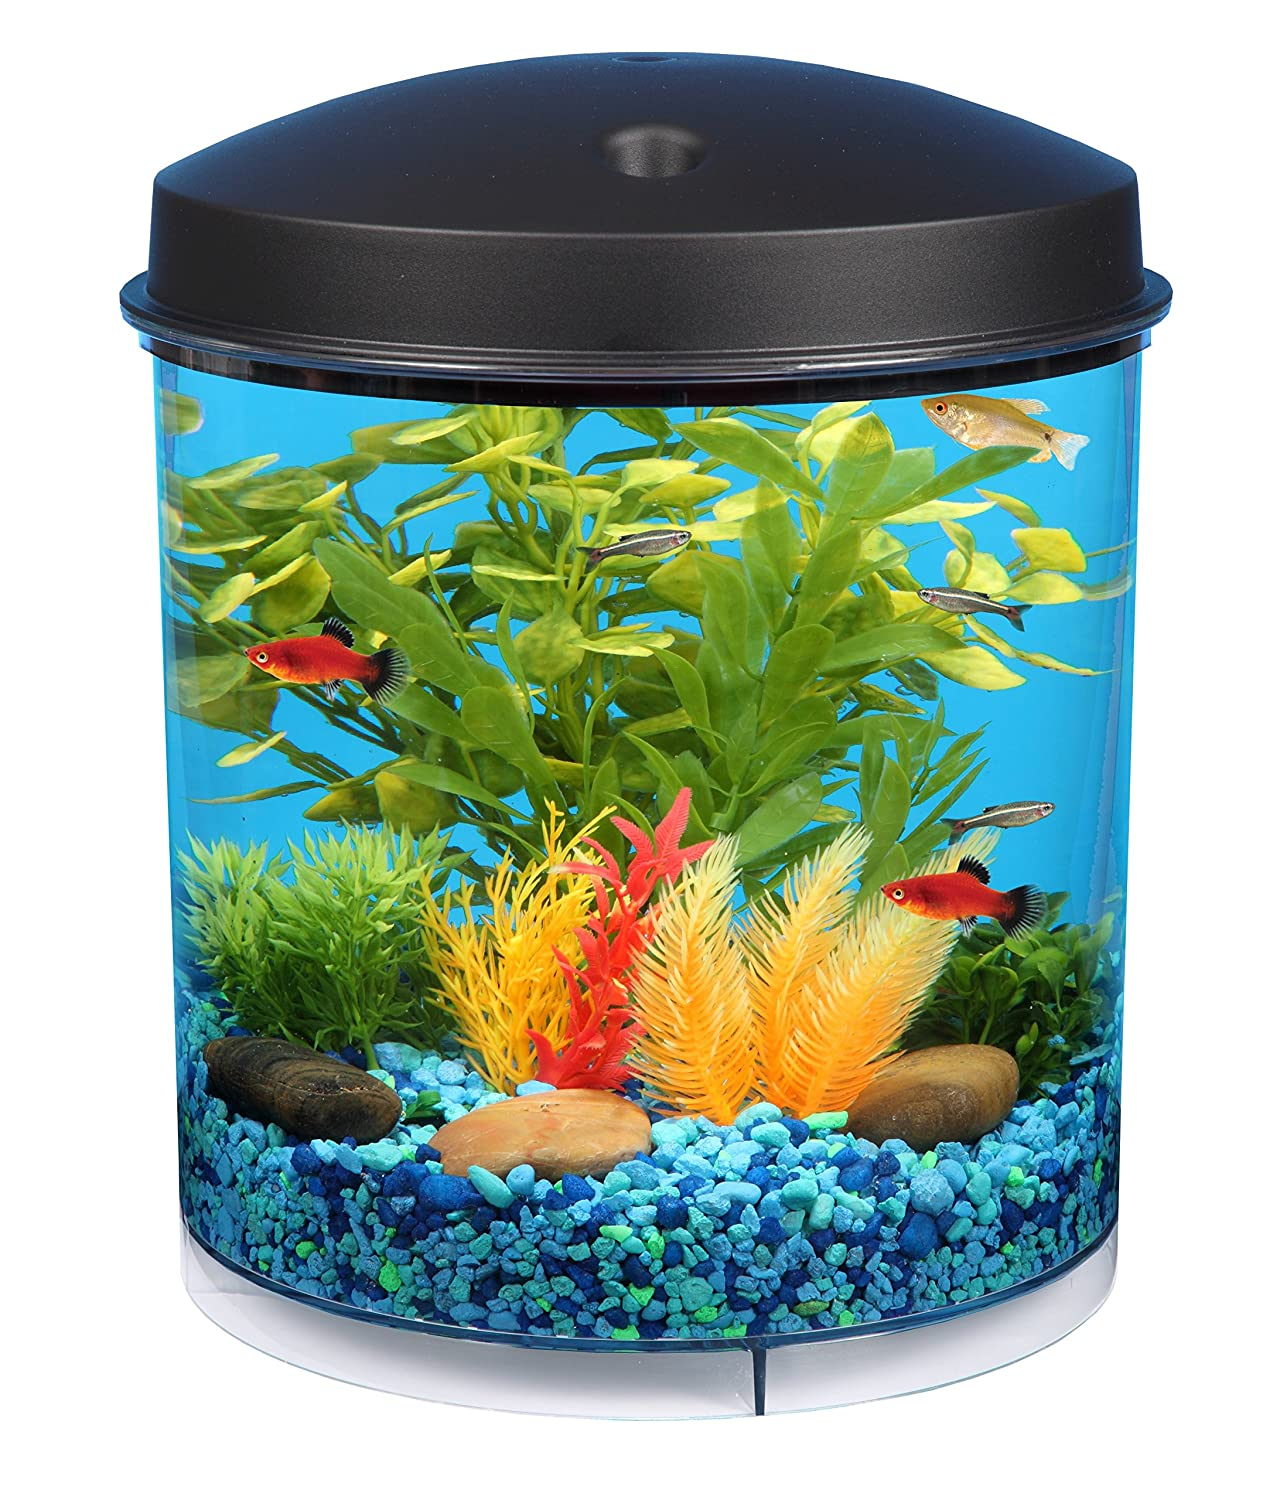 Aquarium fish tank price - Freshwater Aquarium Fish Games